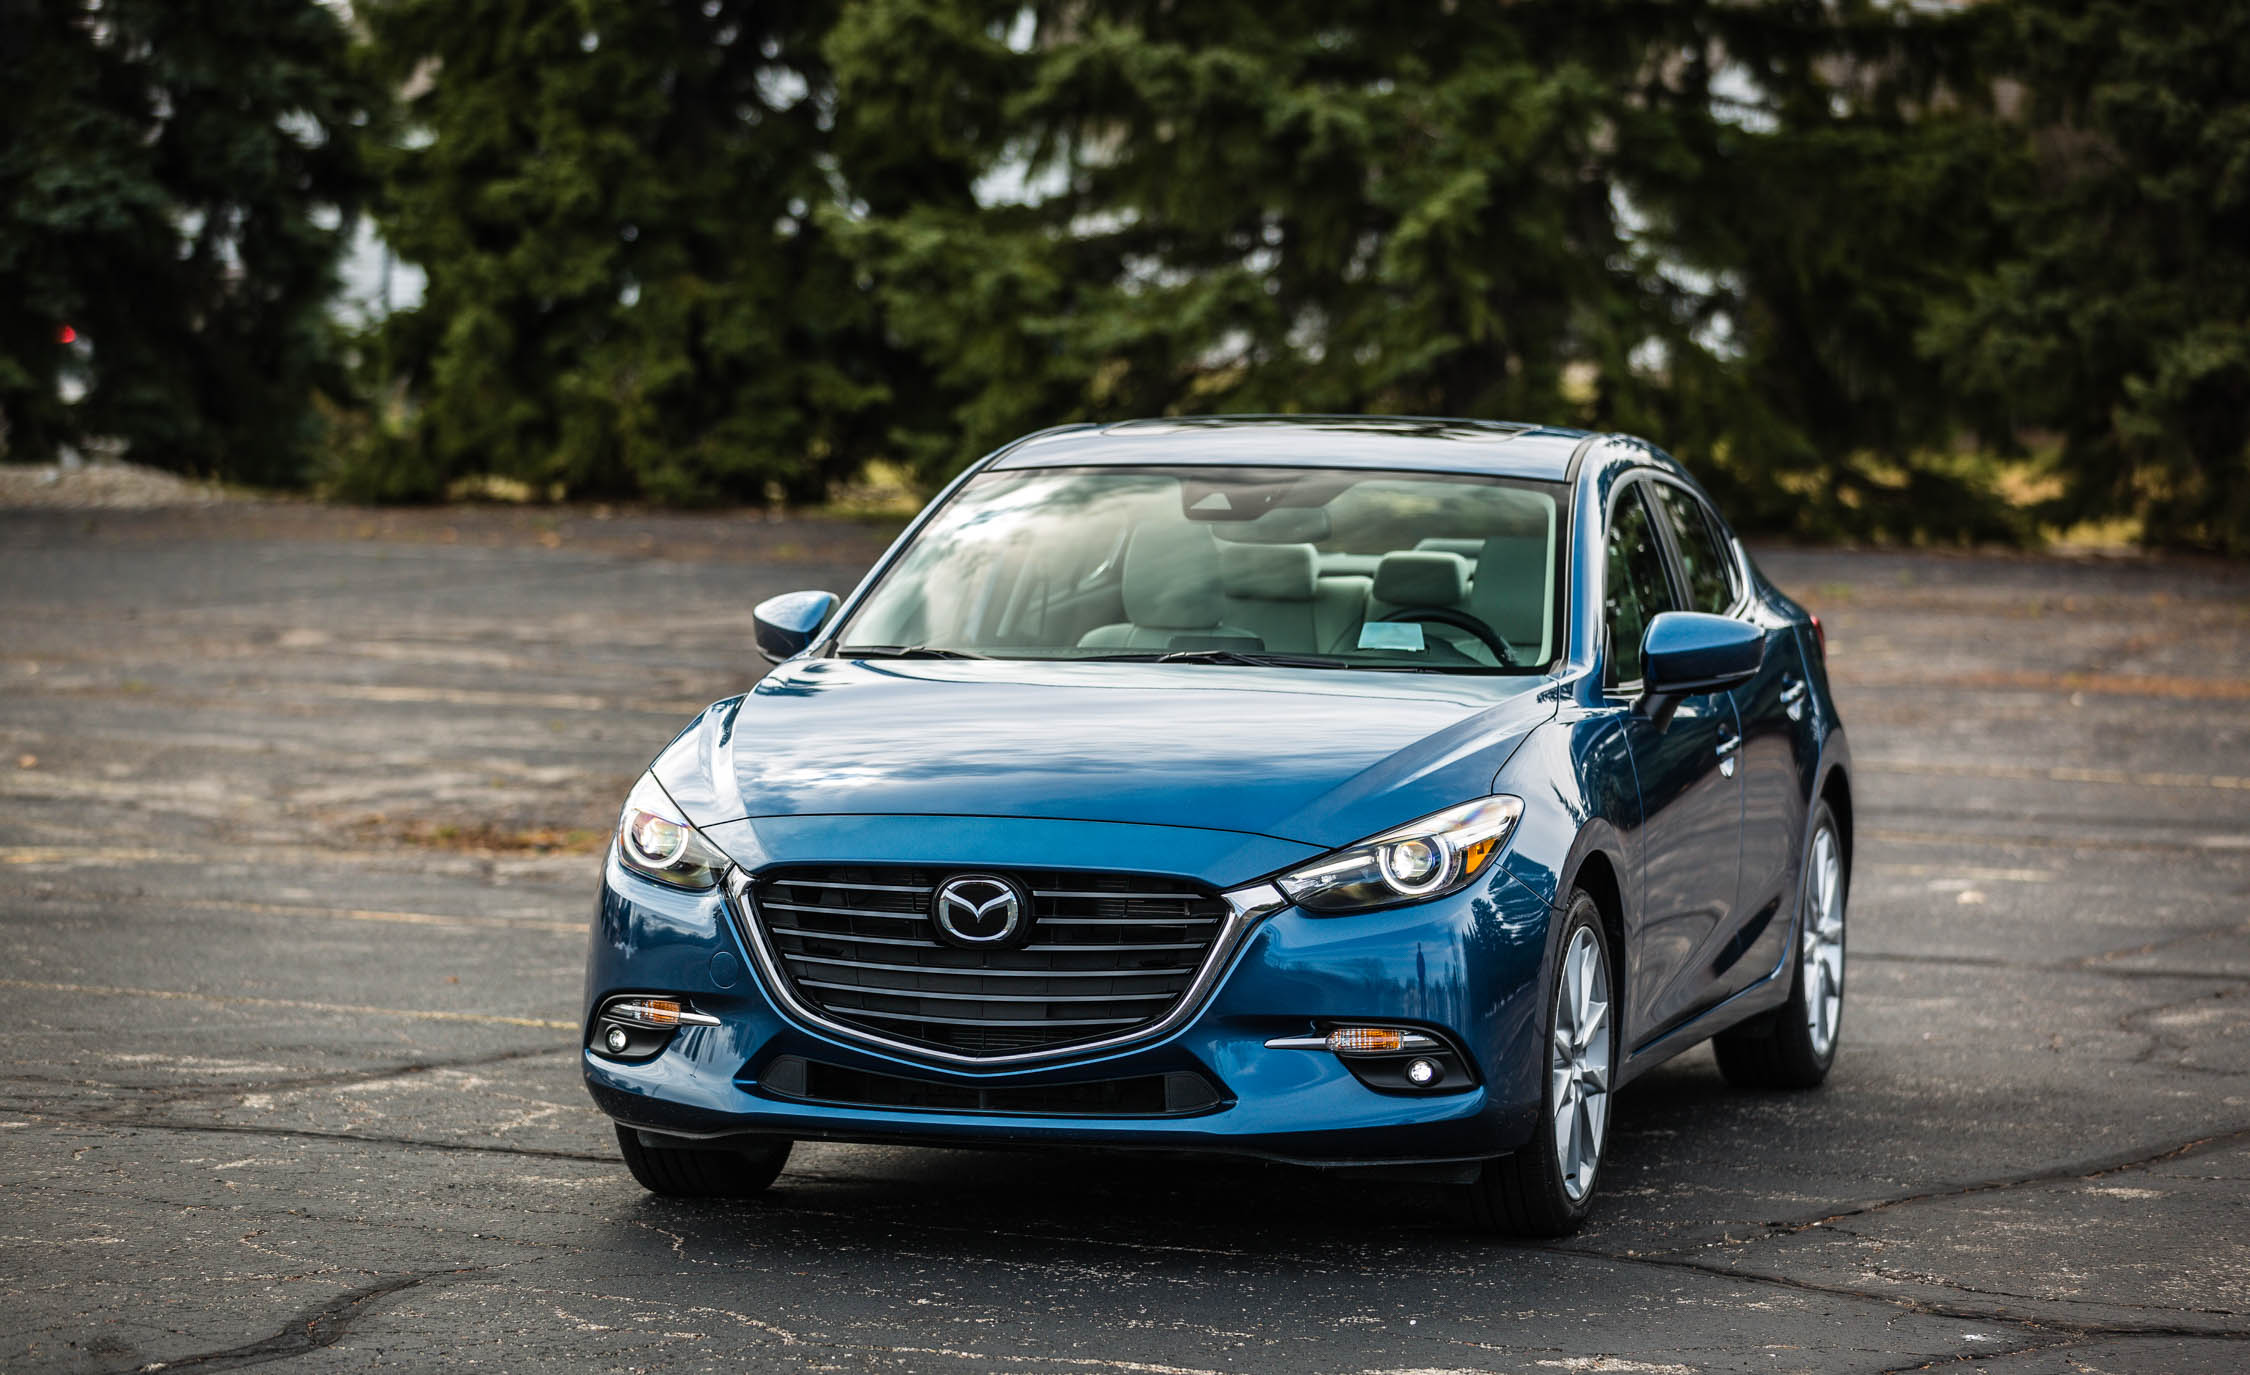 2017 Mazda 3 Grand Touring Sedan Exterior Front And Side (View 4 of 51)